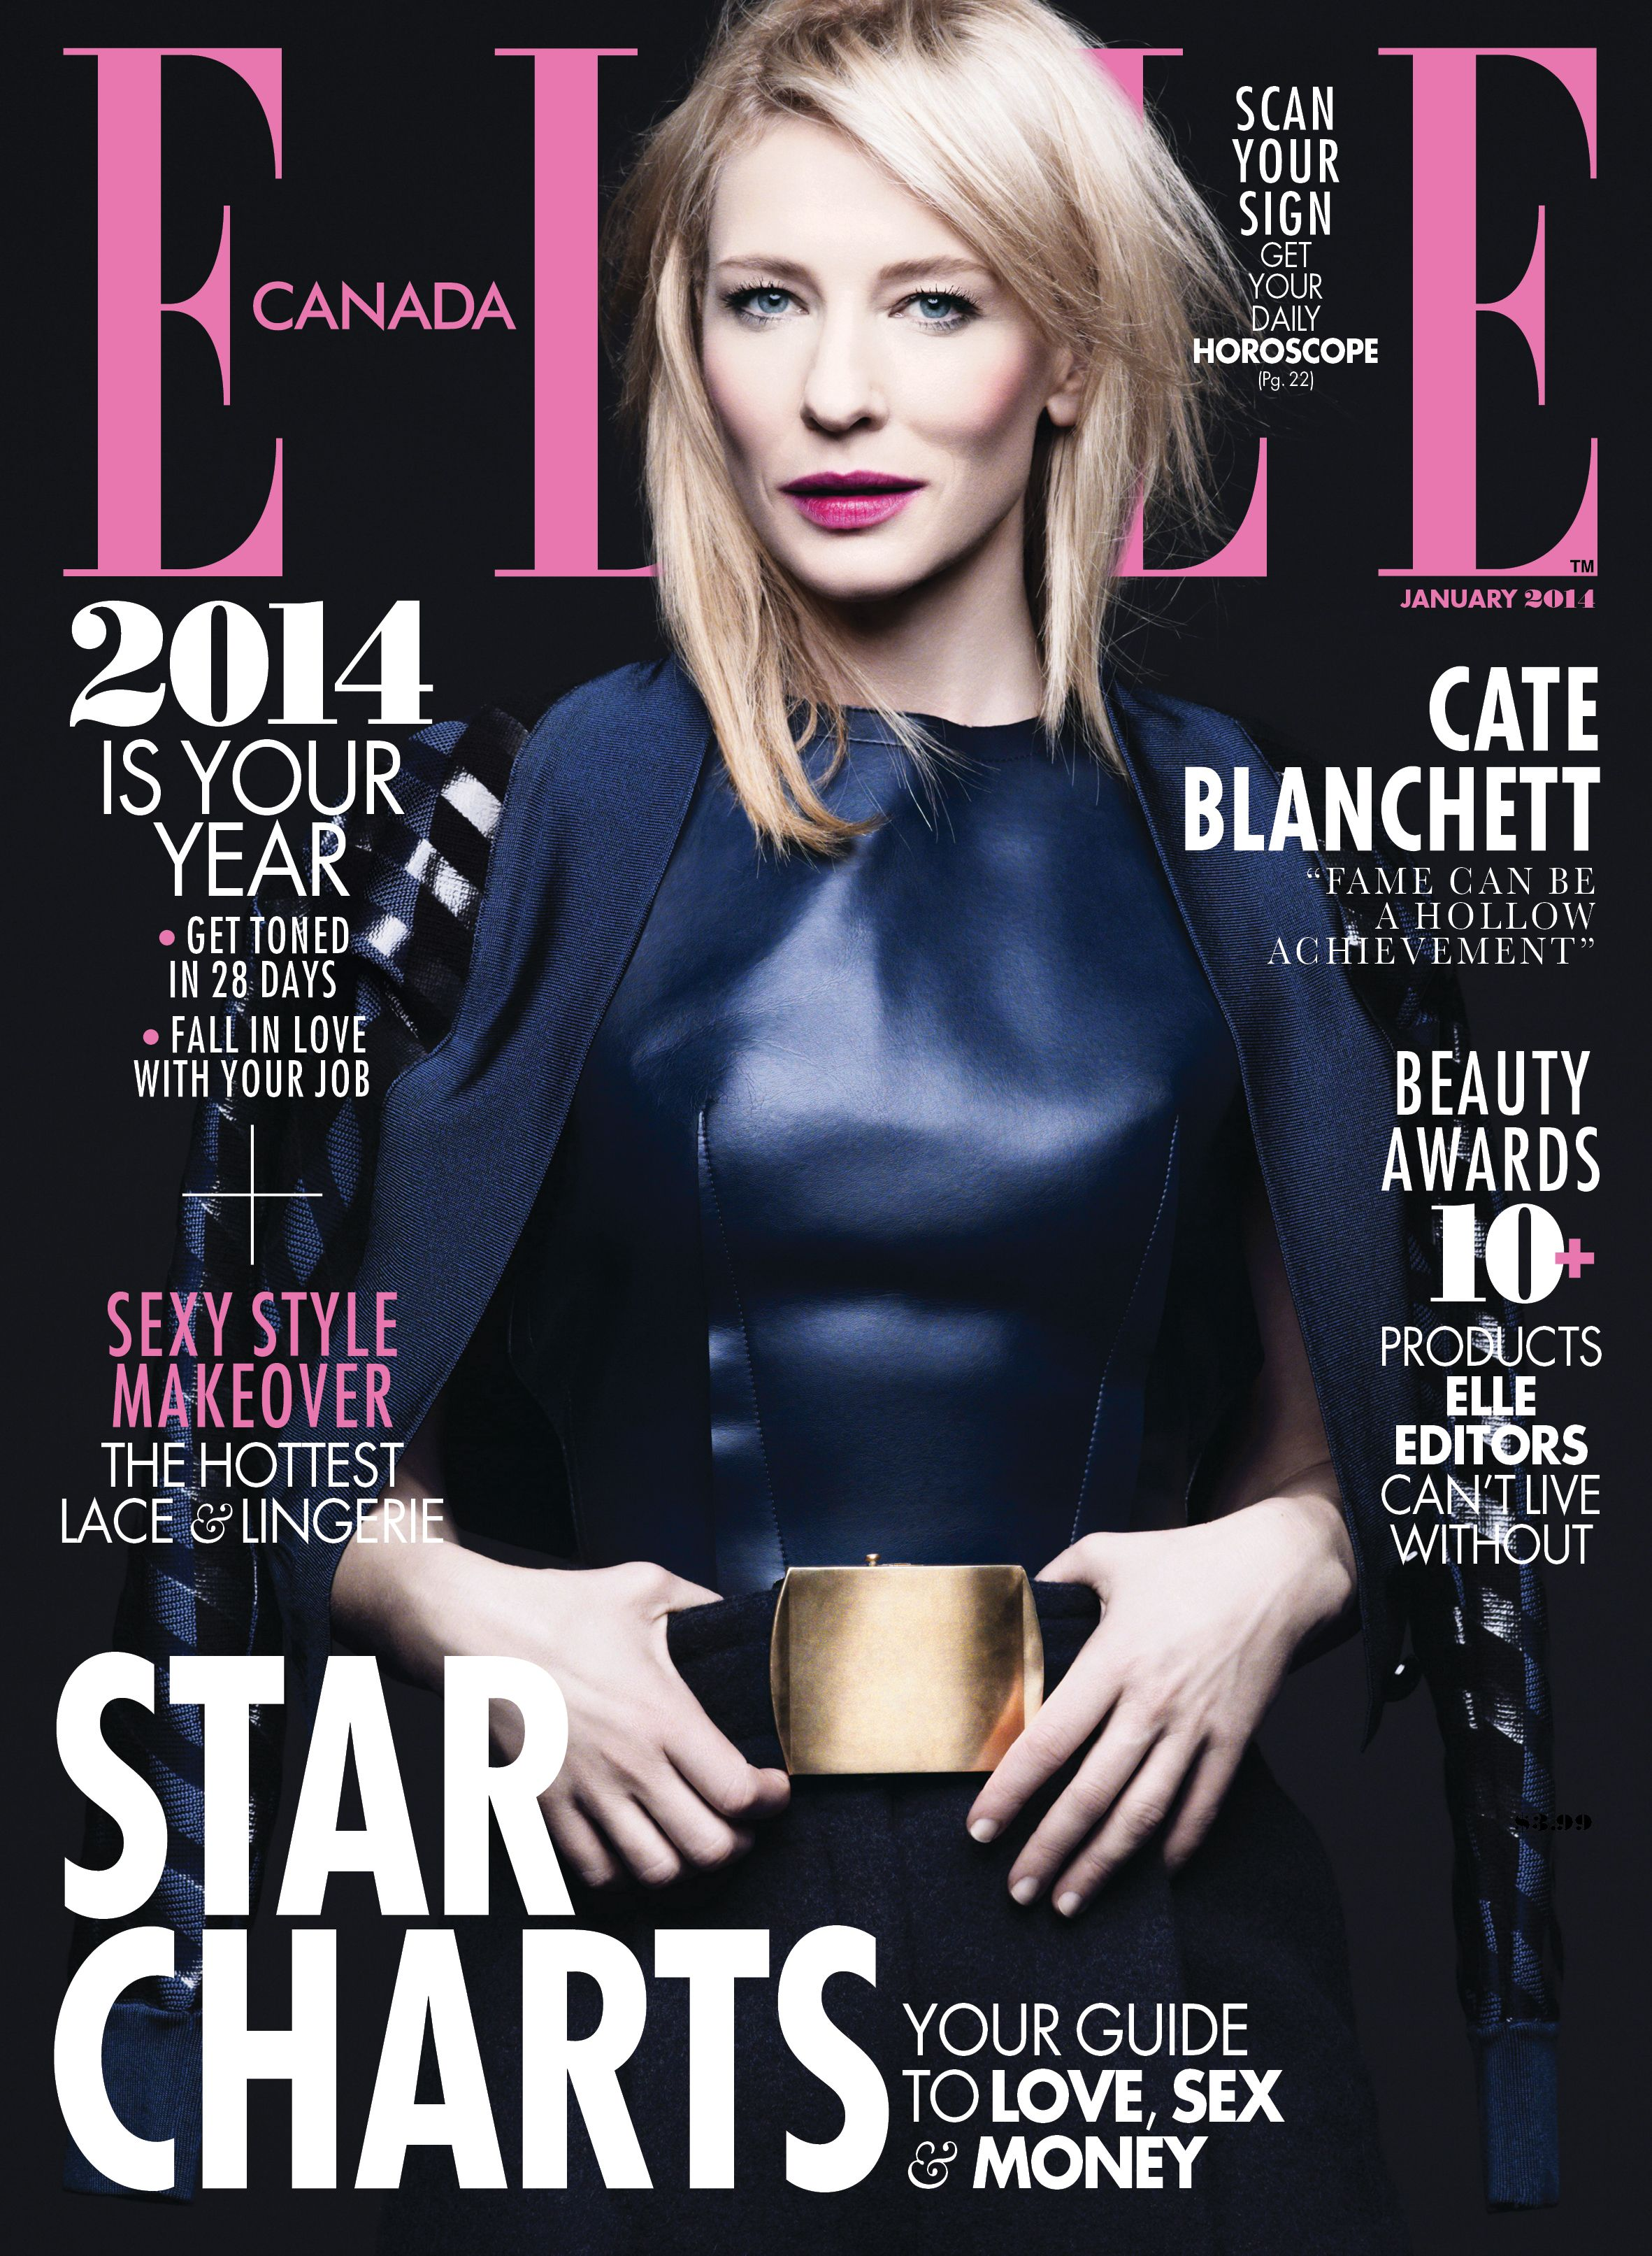 Cate Blanchett is the cover girl on ELLE Canada's January